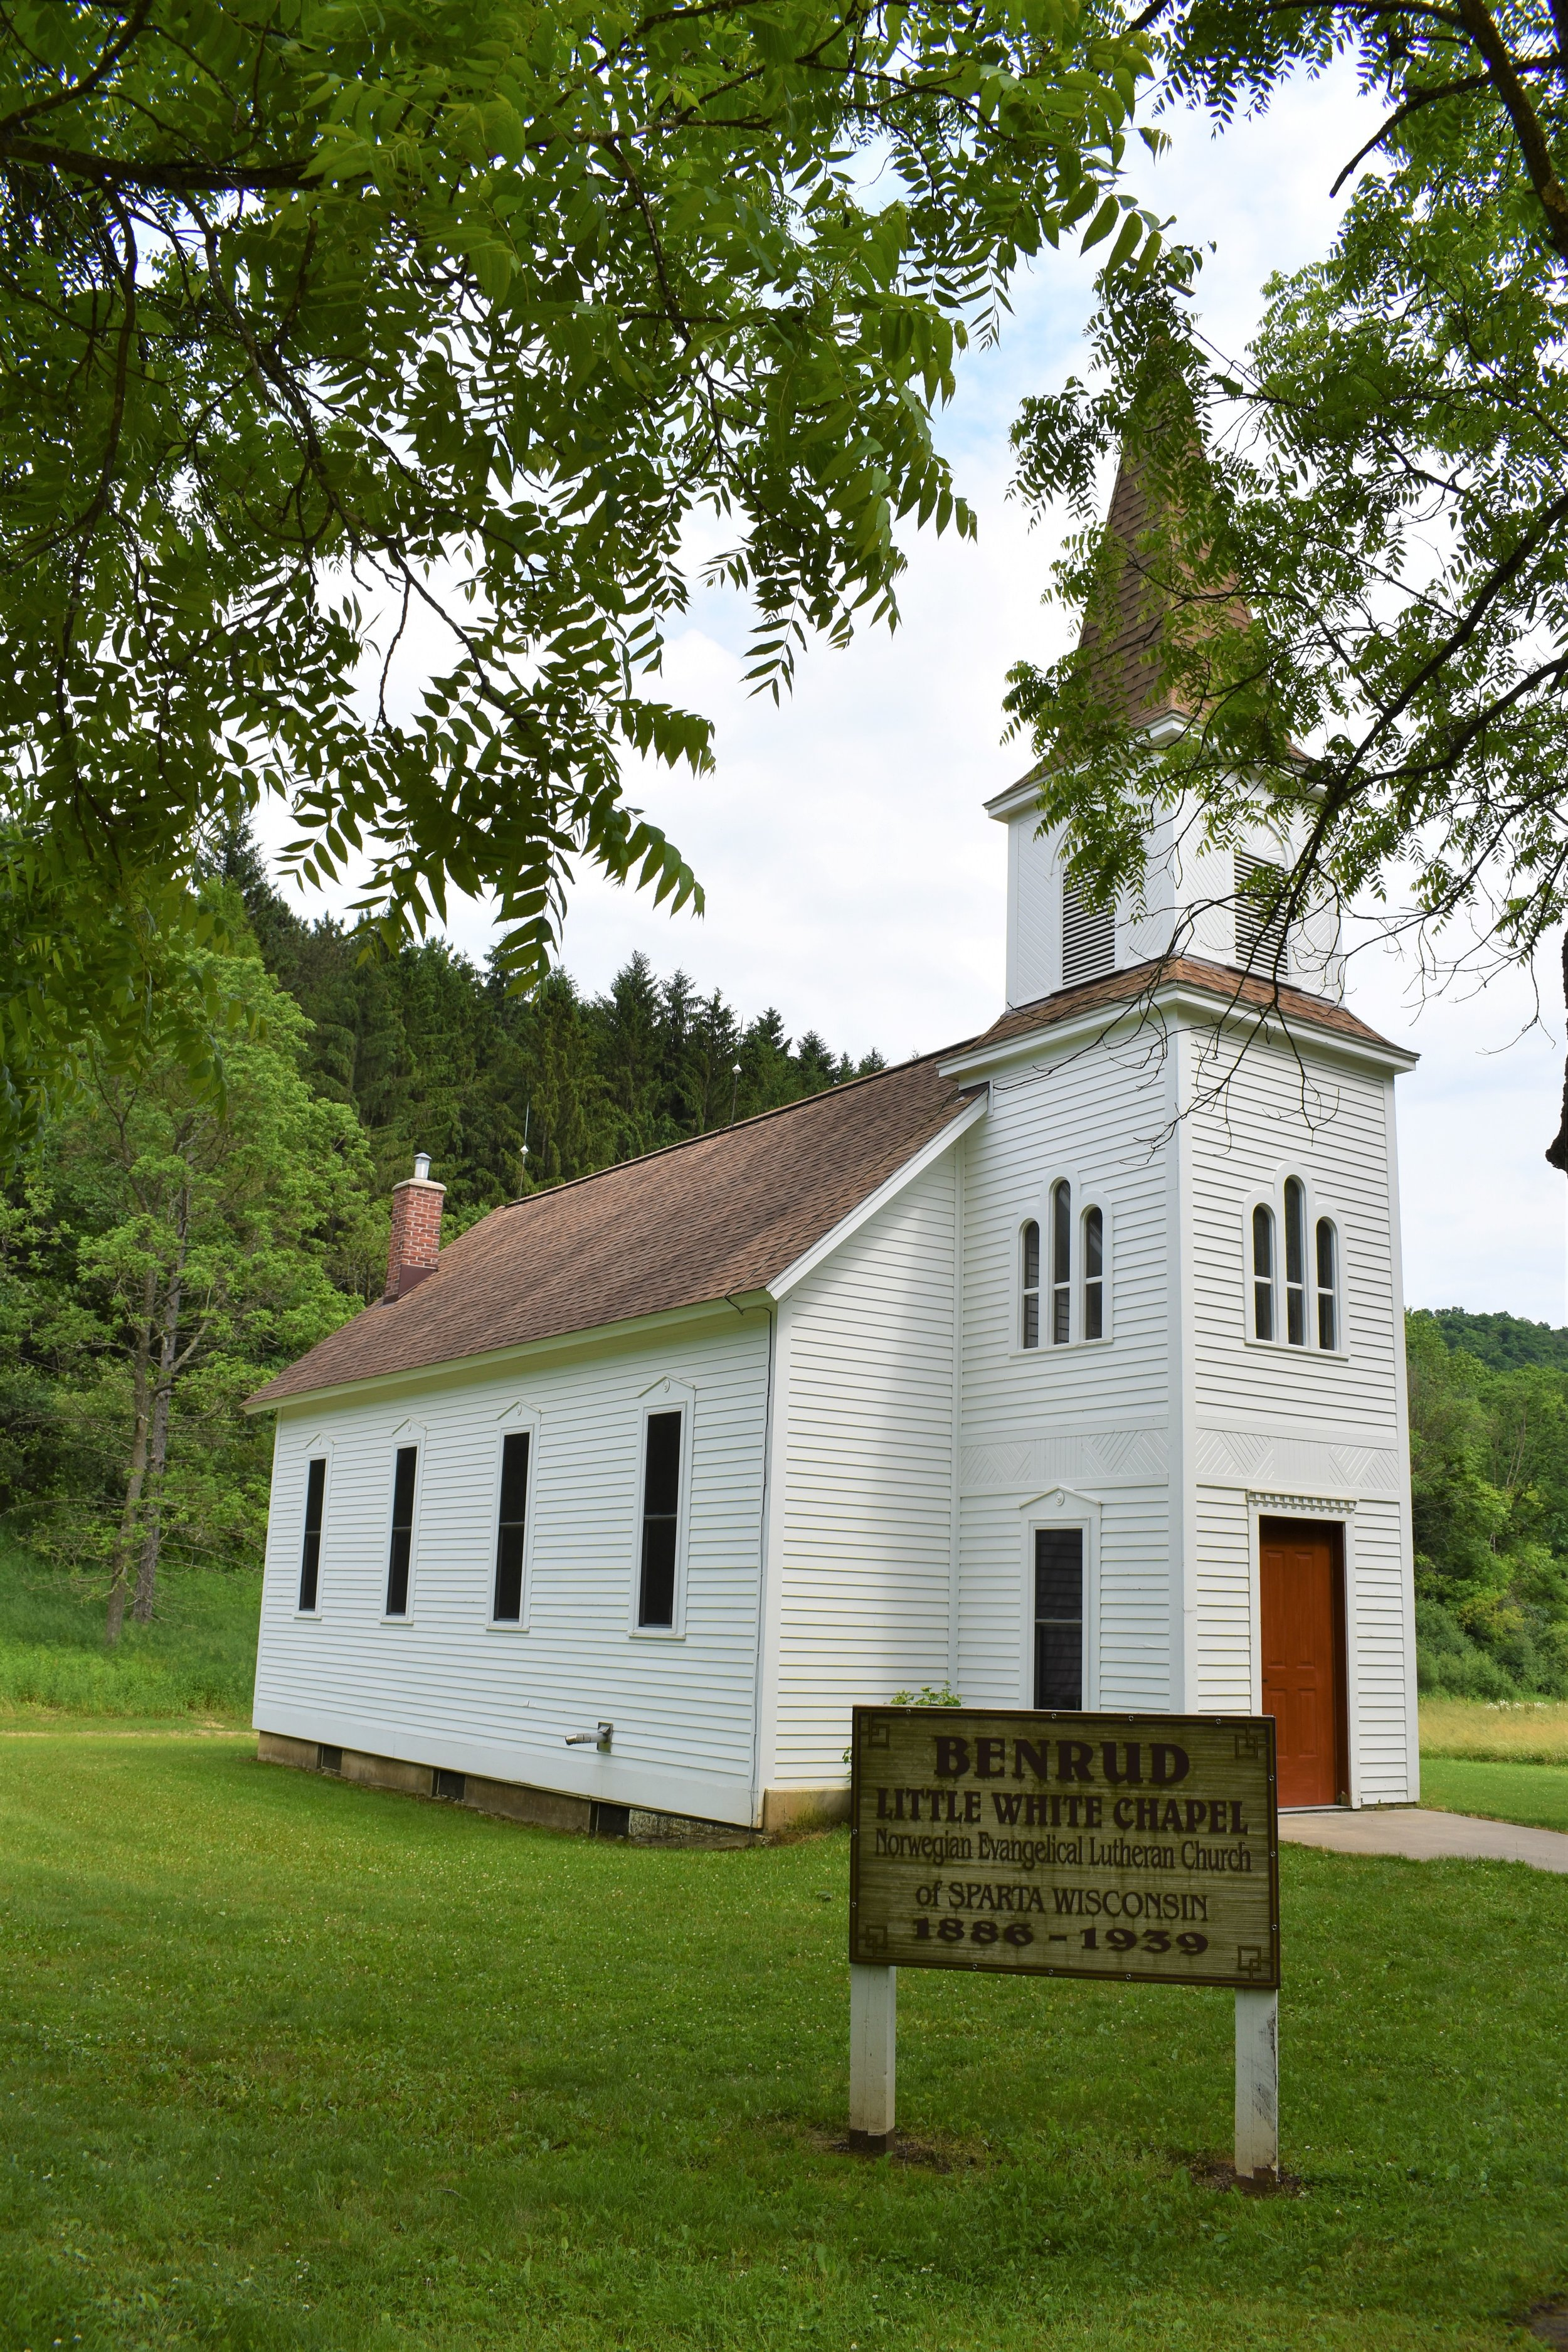 The Benrud Little White Chapel-1886-1939 from Sparta, WI